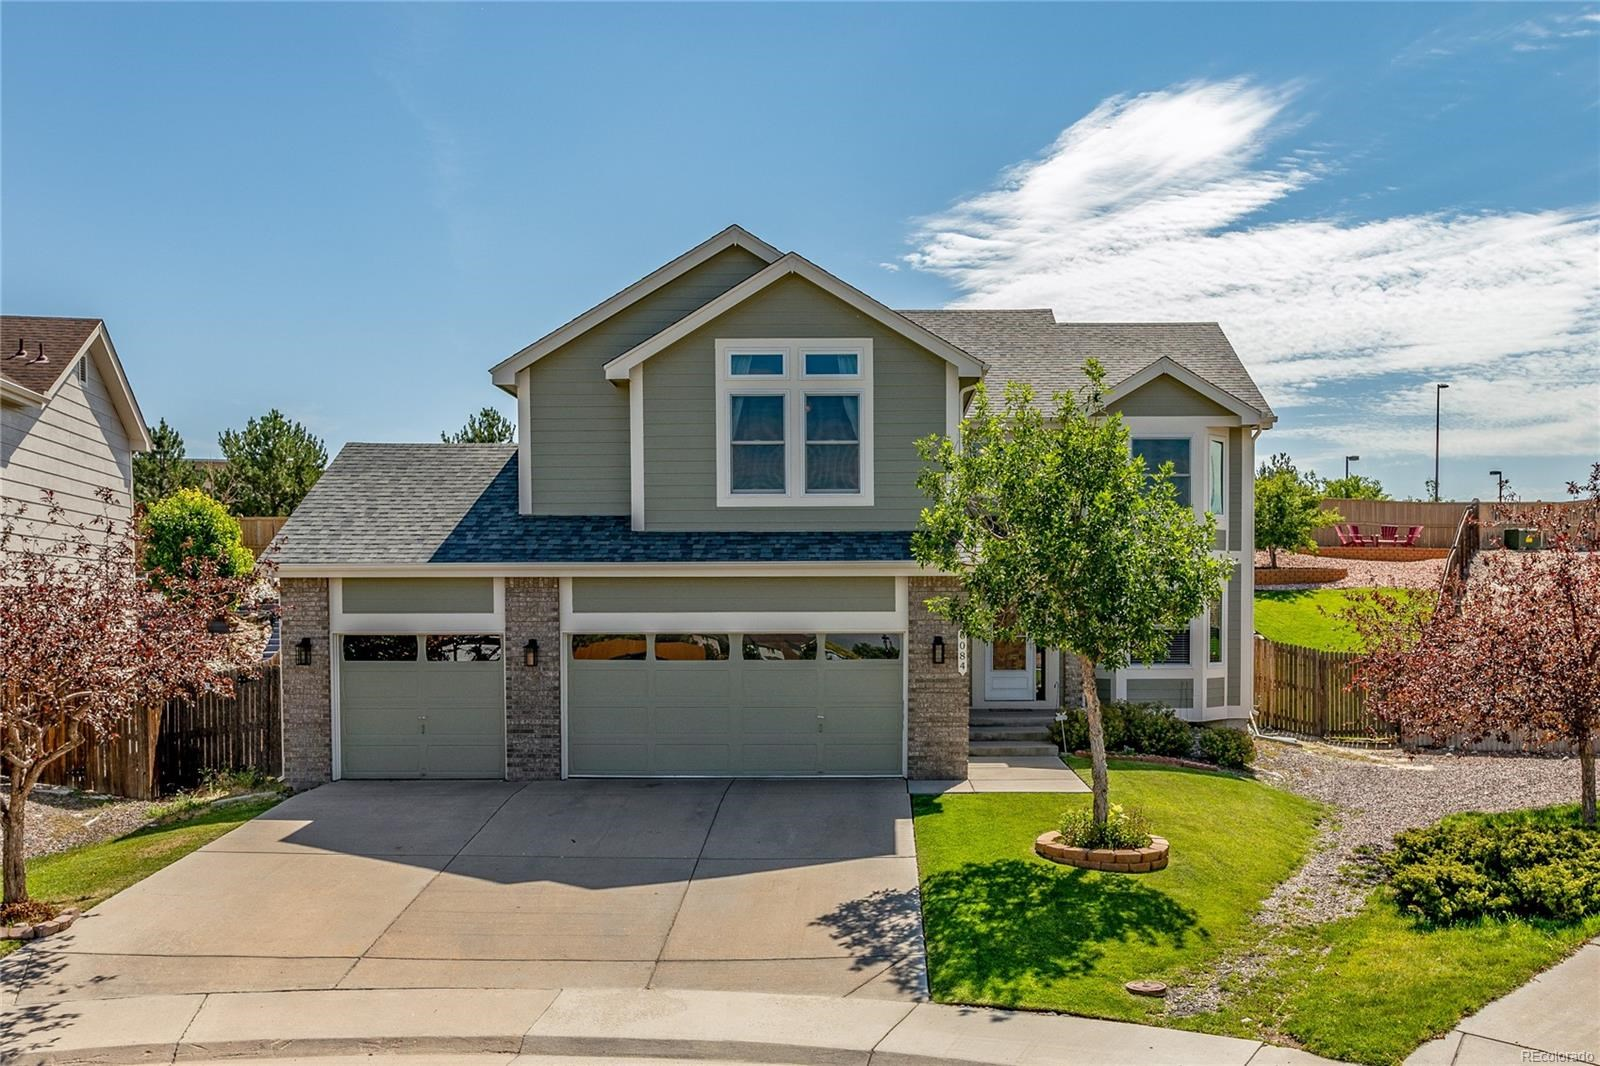 MLS# 3396693 - 1 - 6084 S Zante Way, Aurora, CO 80015